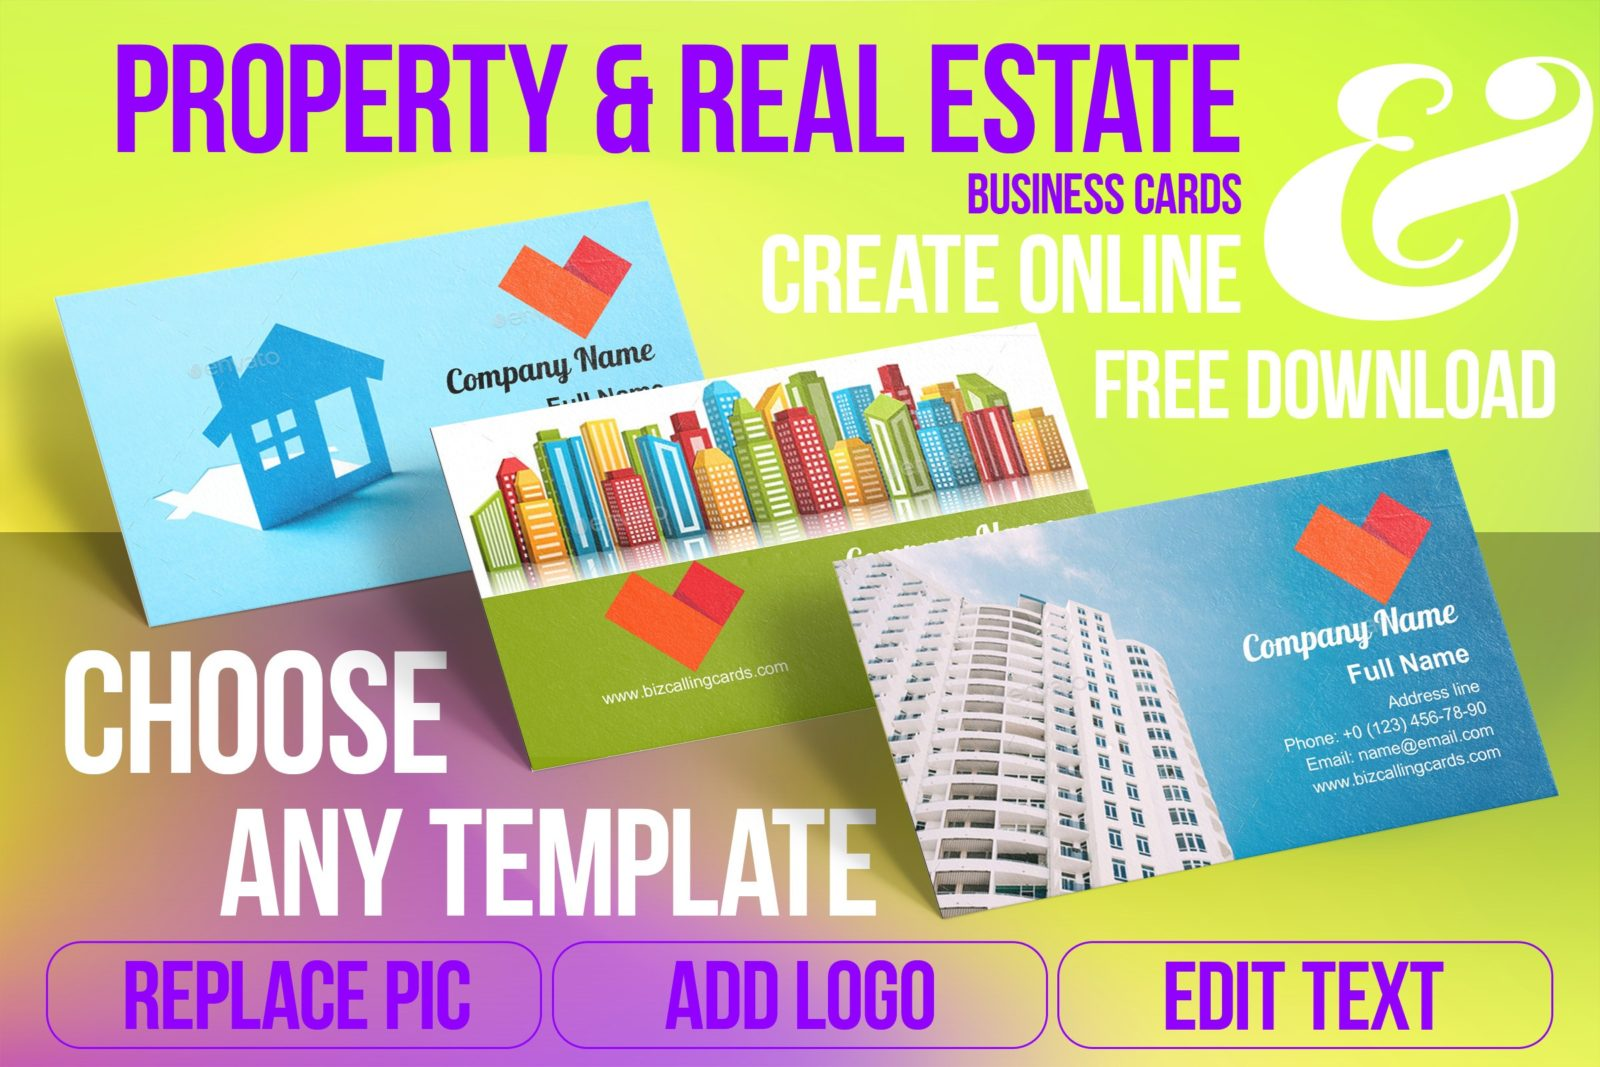 Business Card Templates For Real Estate Free Download